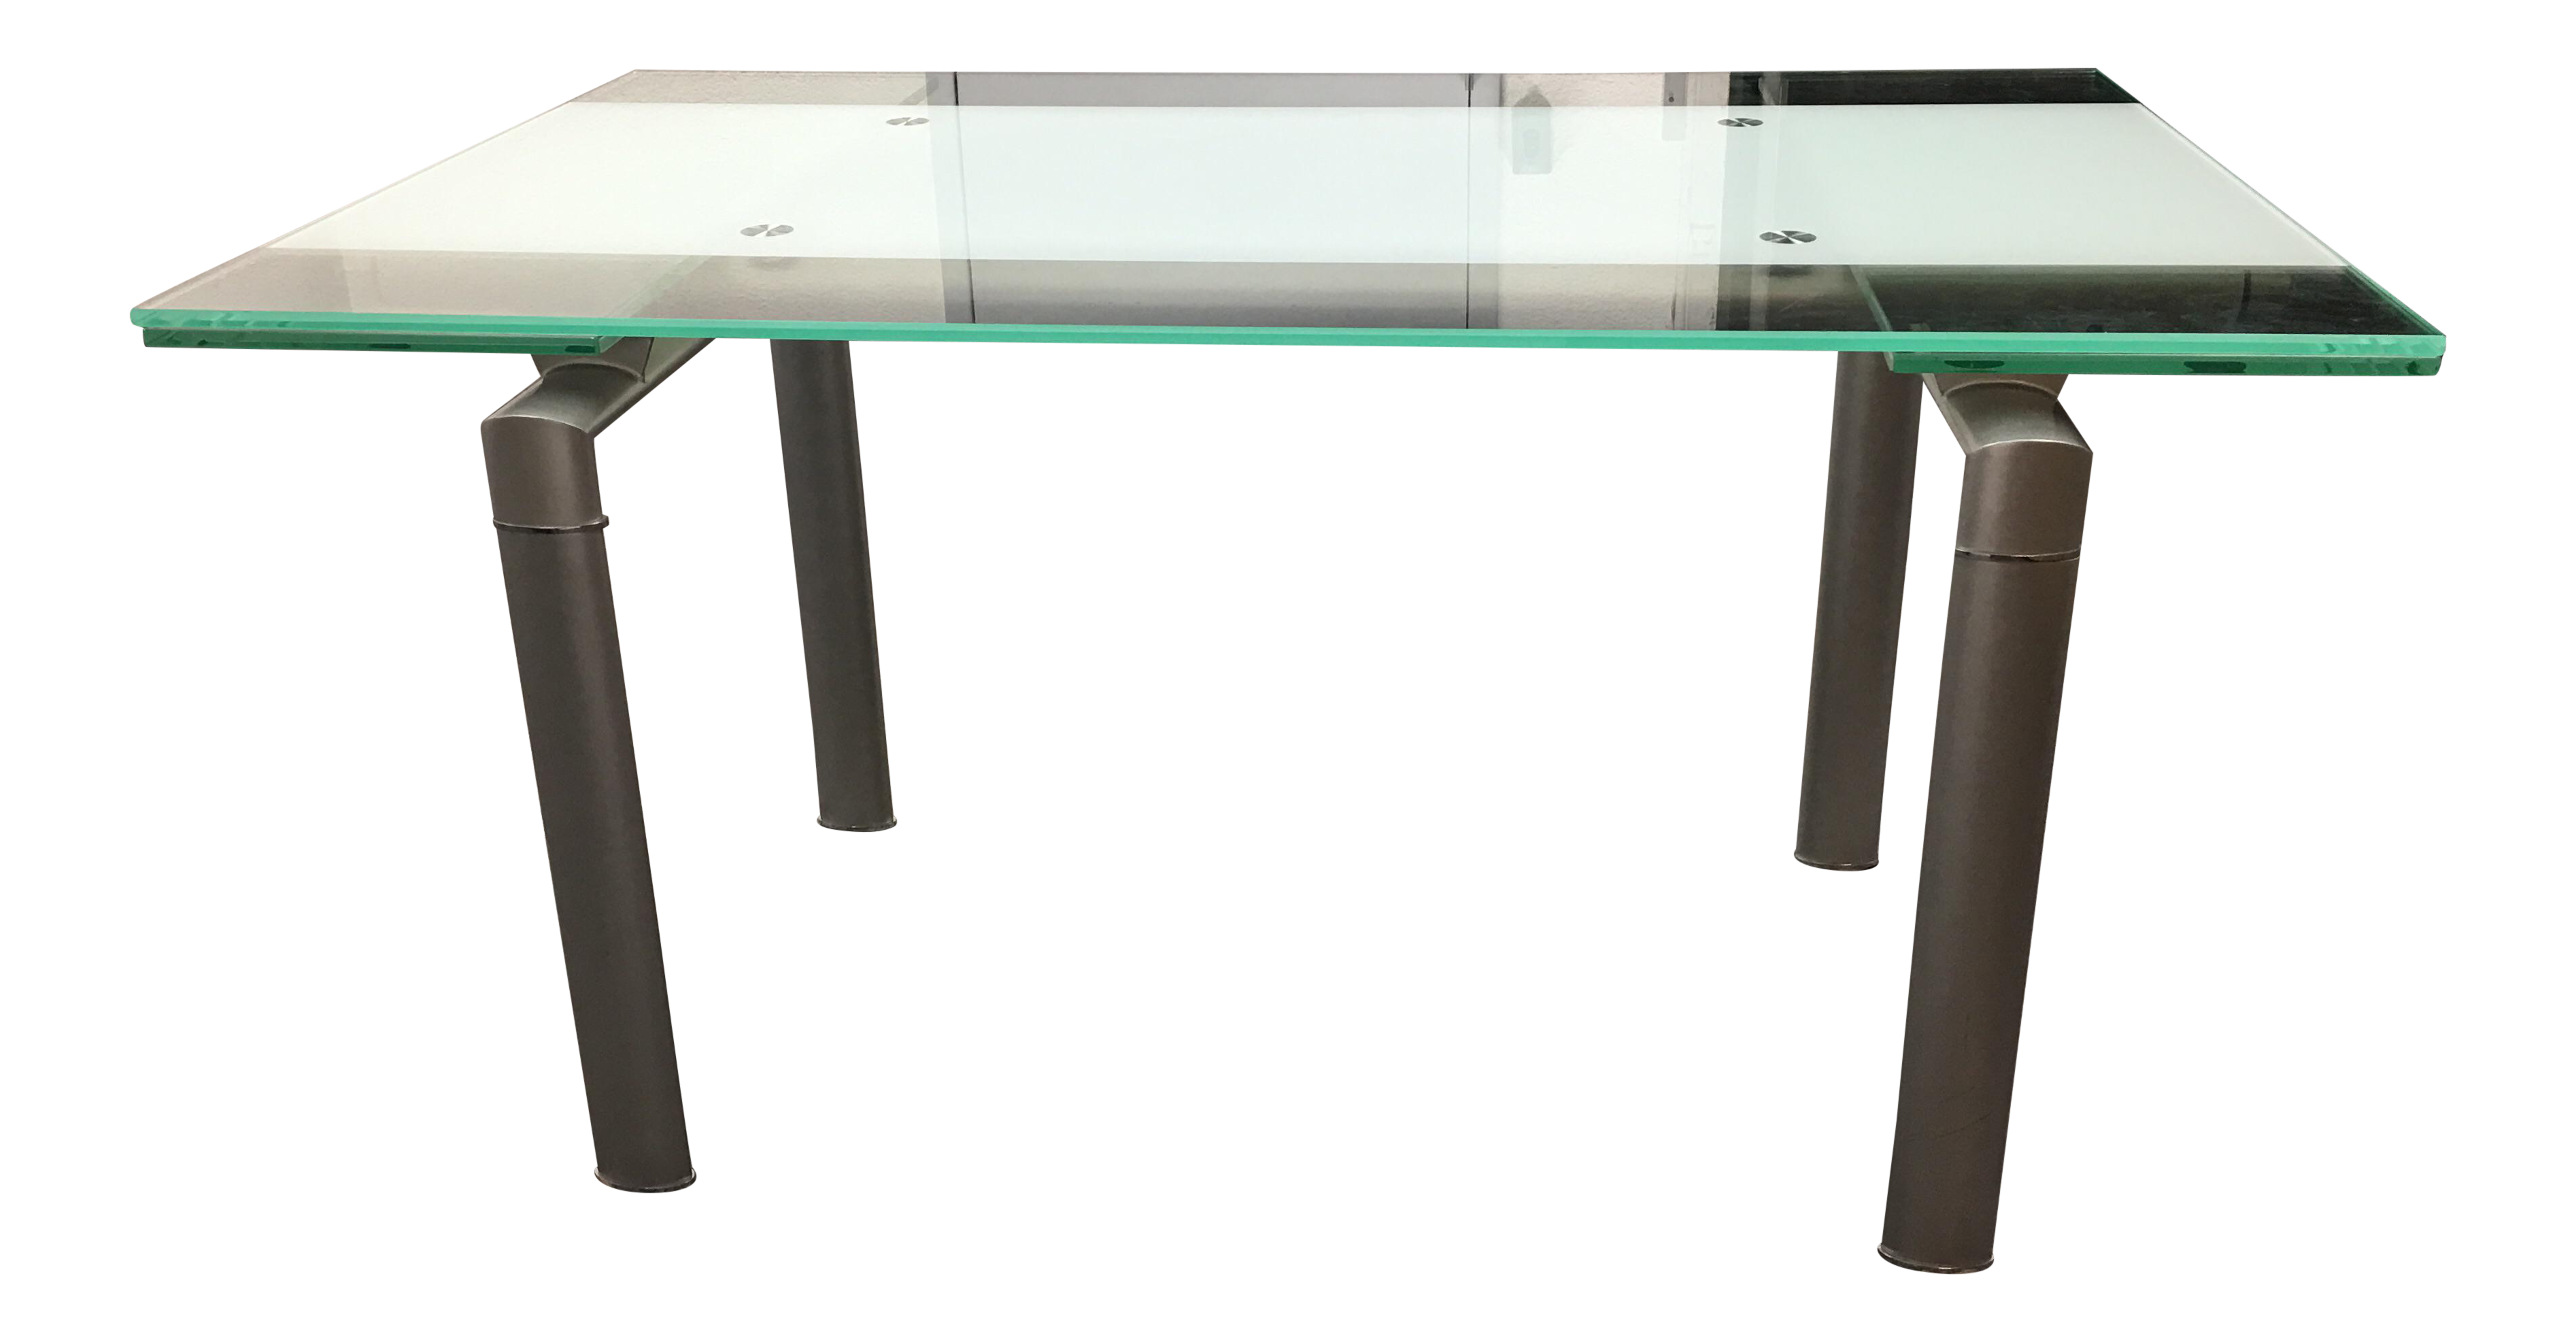 Modern Extendable Glass Top Chrome Dining Table Chairish : modern extendable glass top chrome dining table 7024 from www.chairish.com size 3788 x 1973 png 4548kB